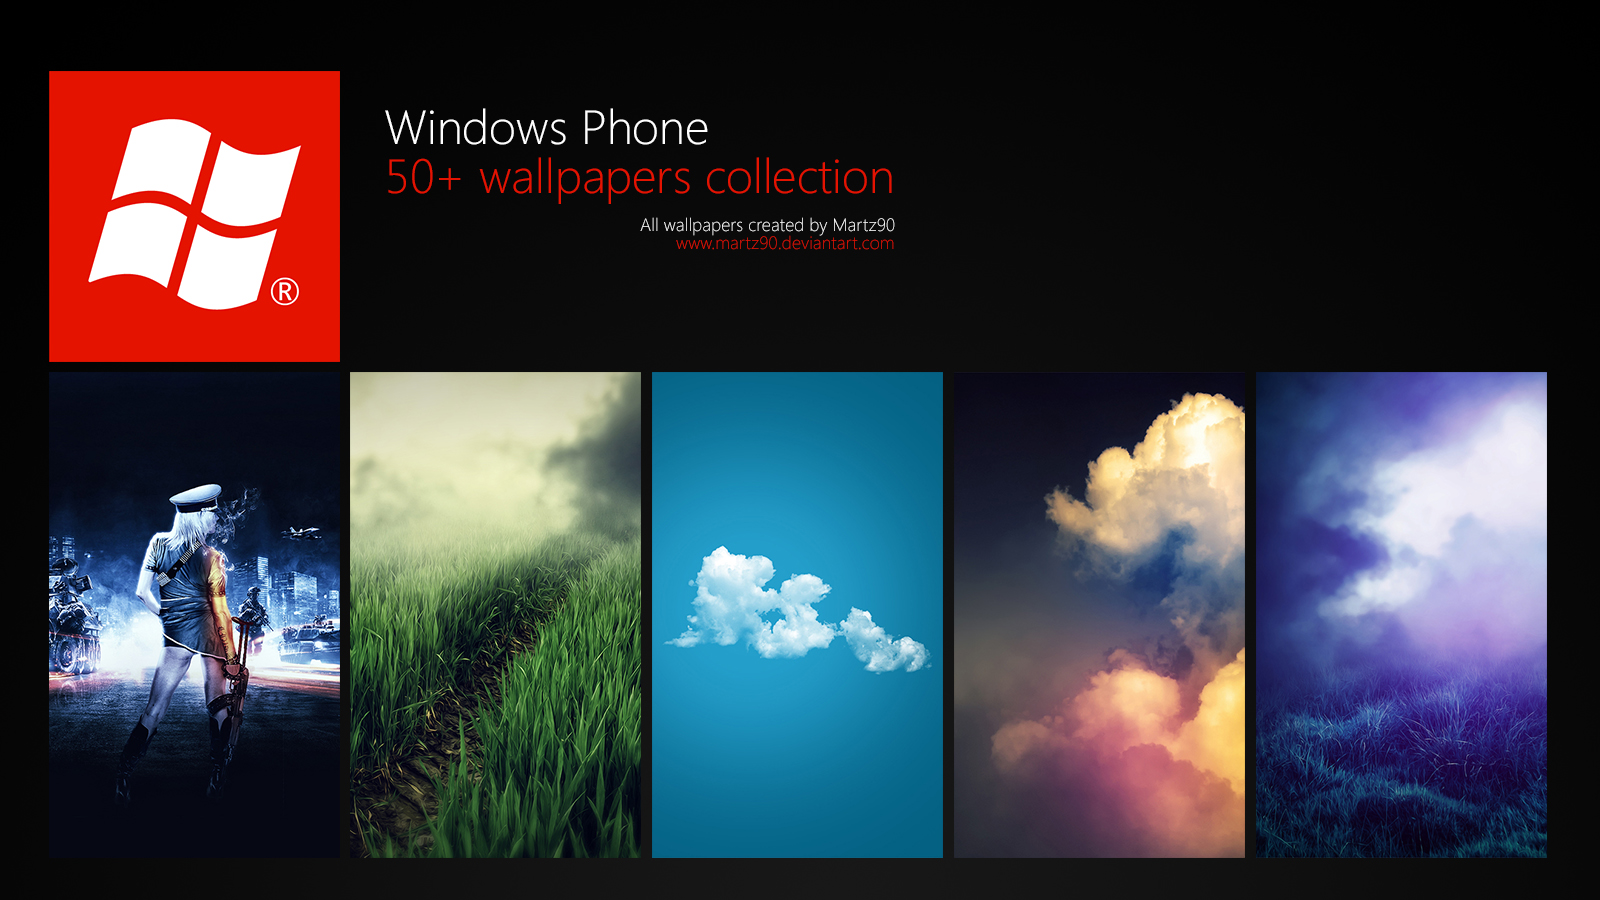 windows phone wallpapers collection by martz90 customization wallpaper 1600x900